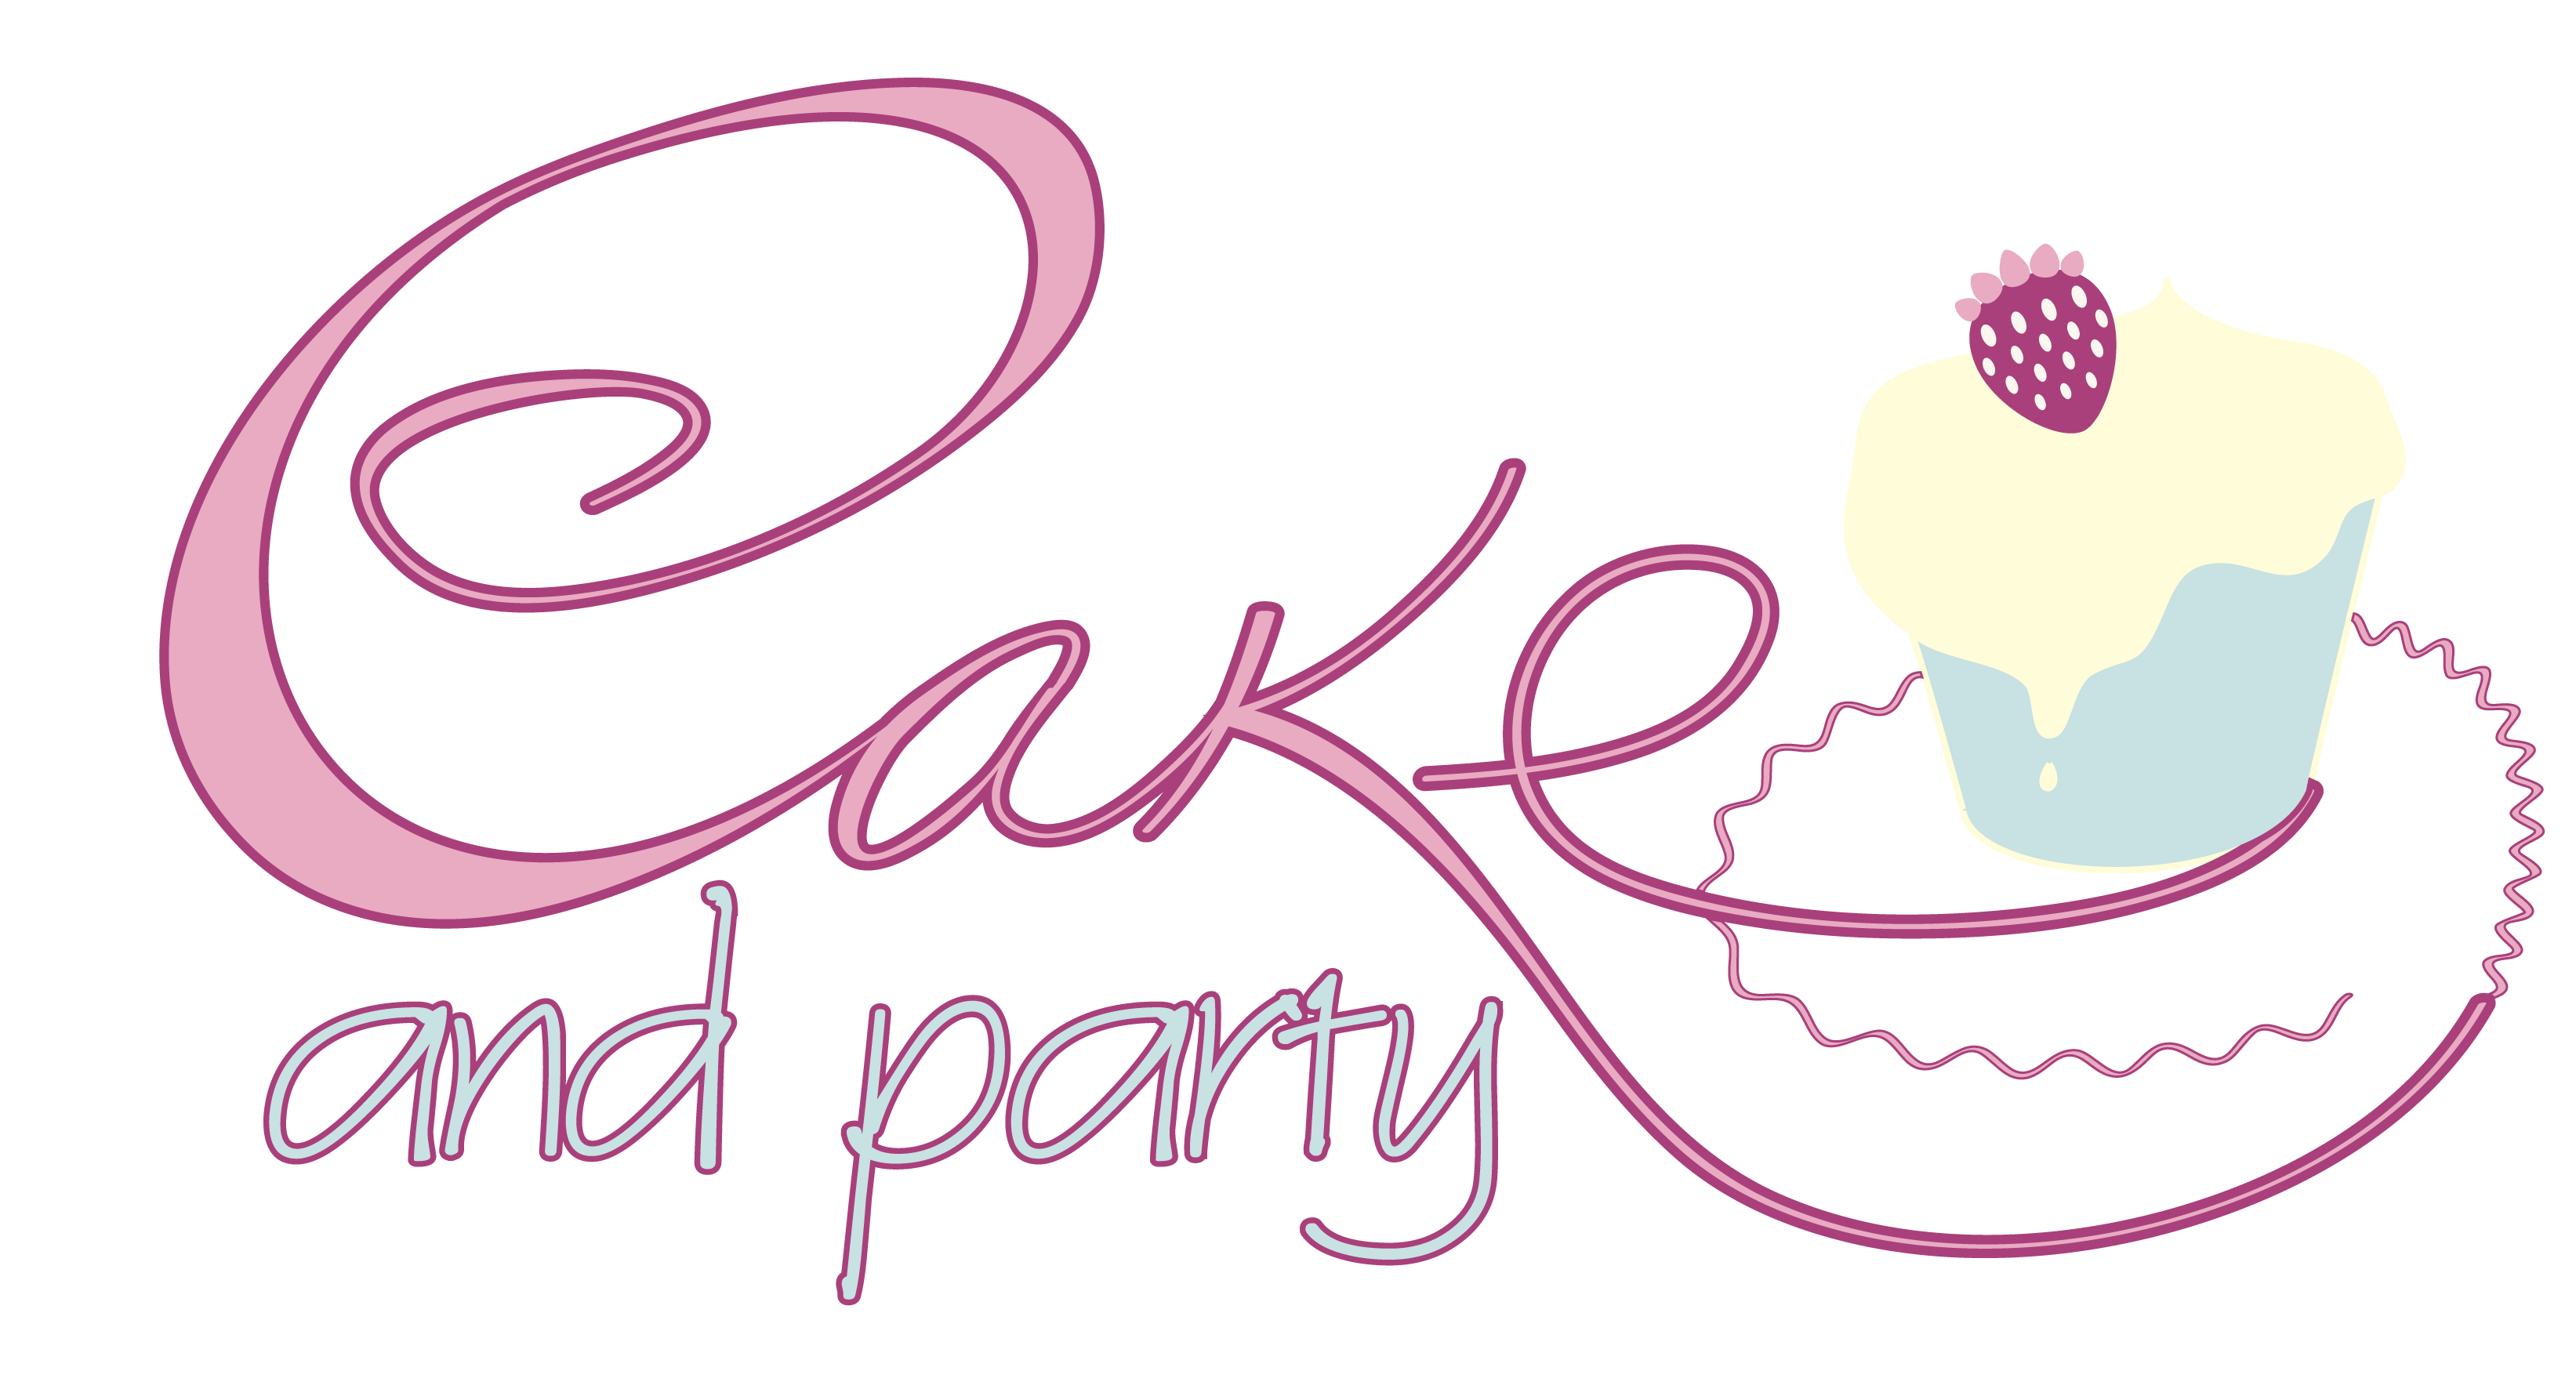 Cake and Party by Smart4 Srls